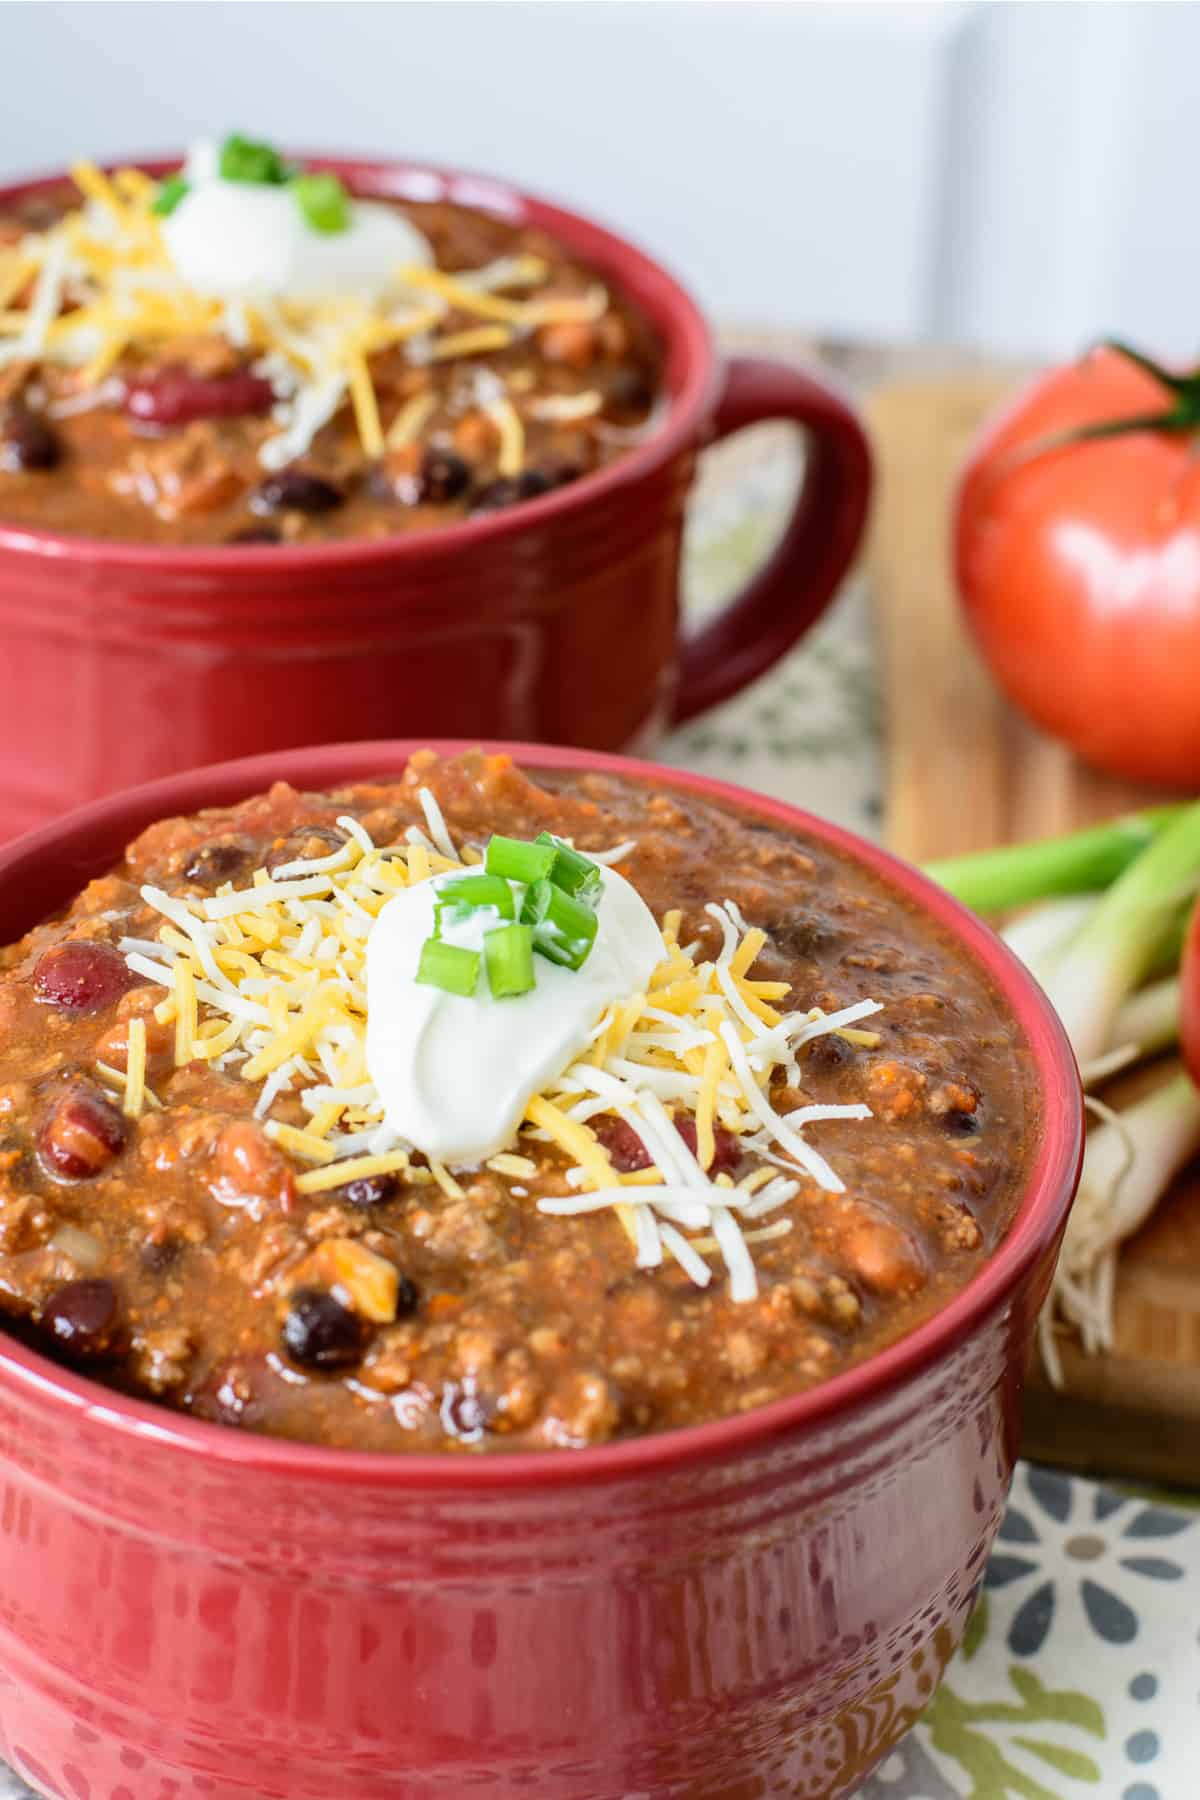 Quick and easy chili from scratch topped with sour cream, cheese and green onion.